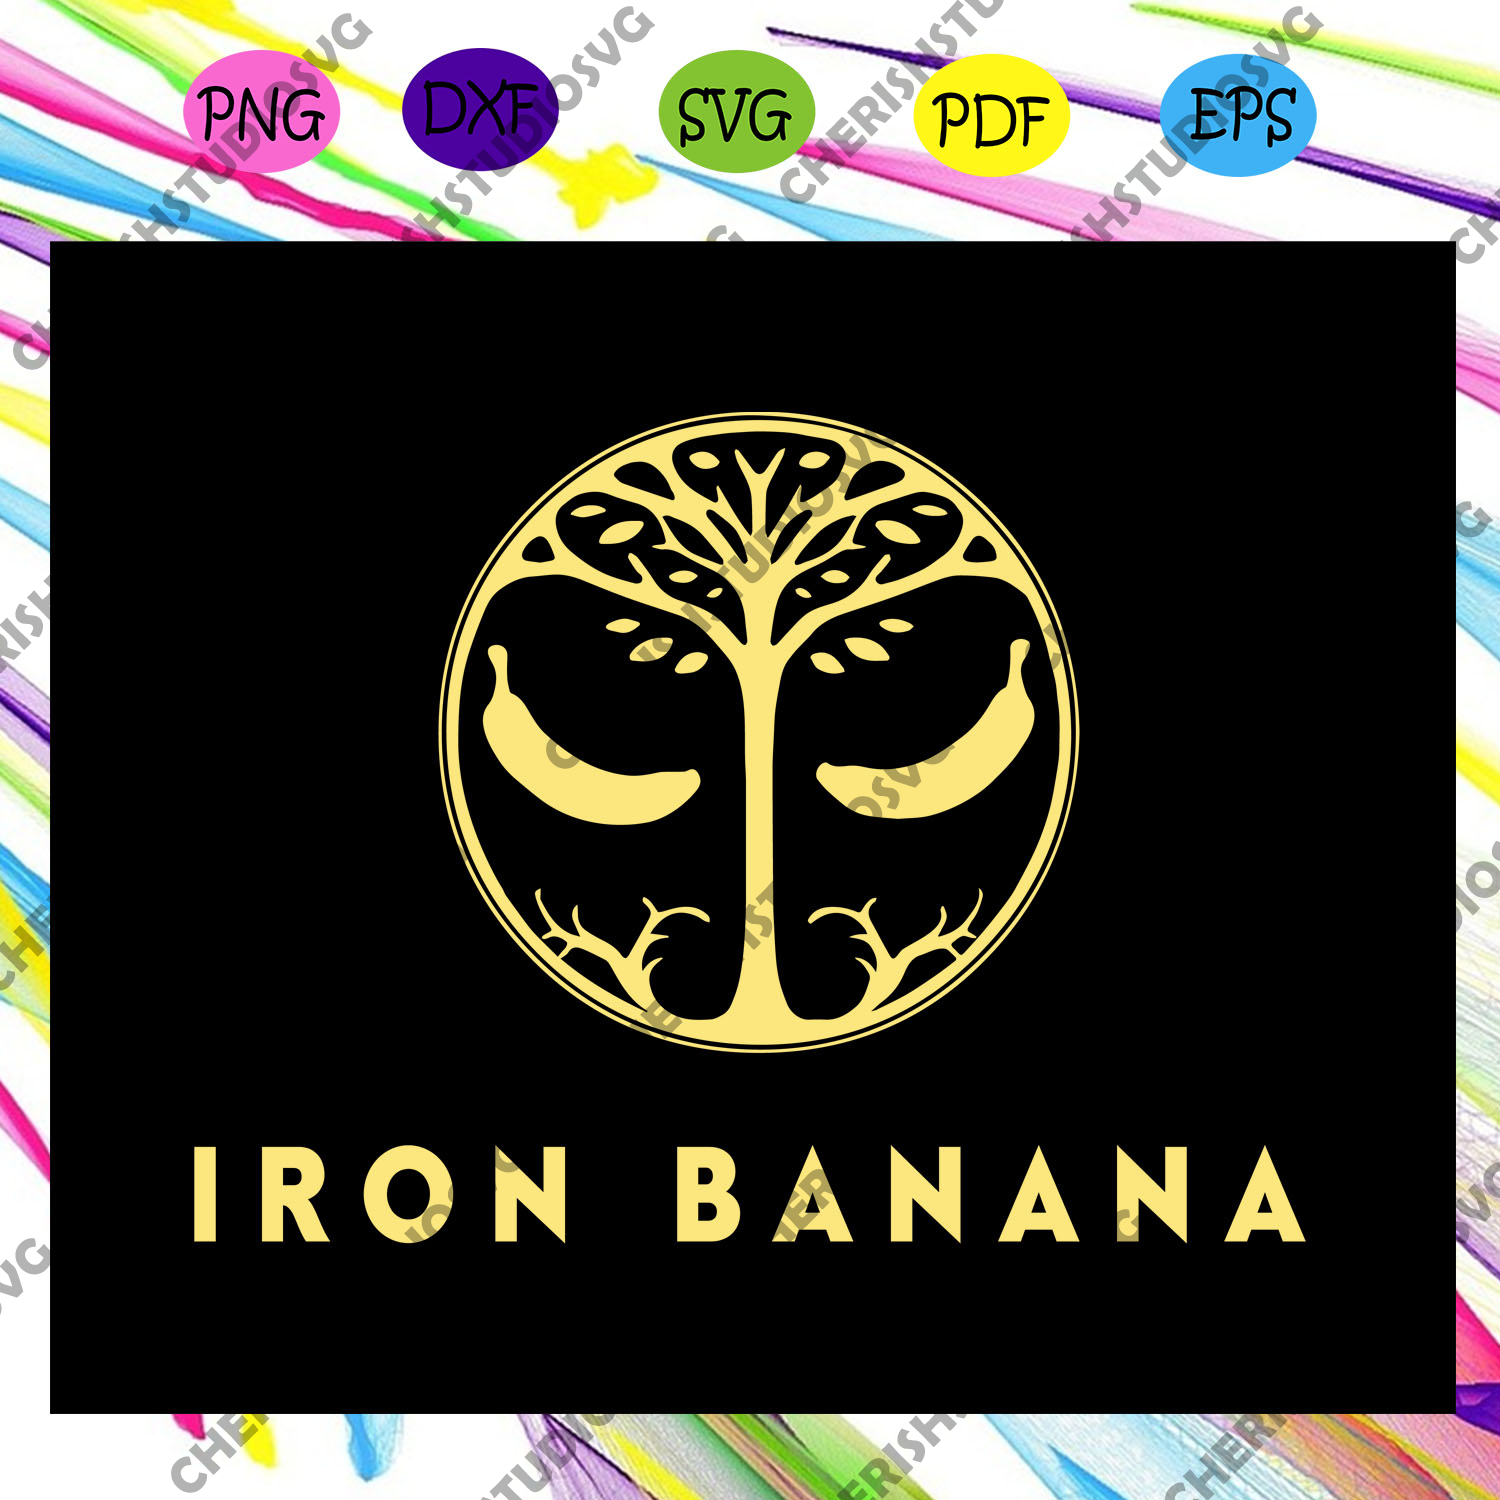 Iron banana svg, iron banana, banana svg, iron banner, iron banana shirt,trending svg For Silhouette, Files For Cricut, SVG, DXF, EPS, PNG Instant Download